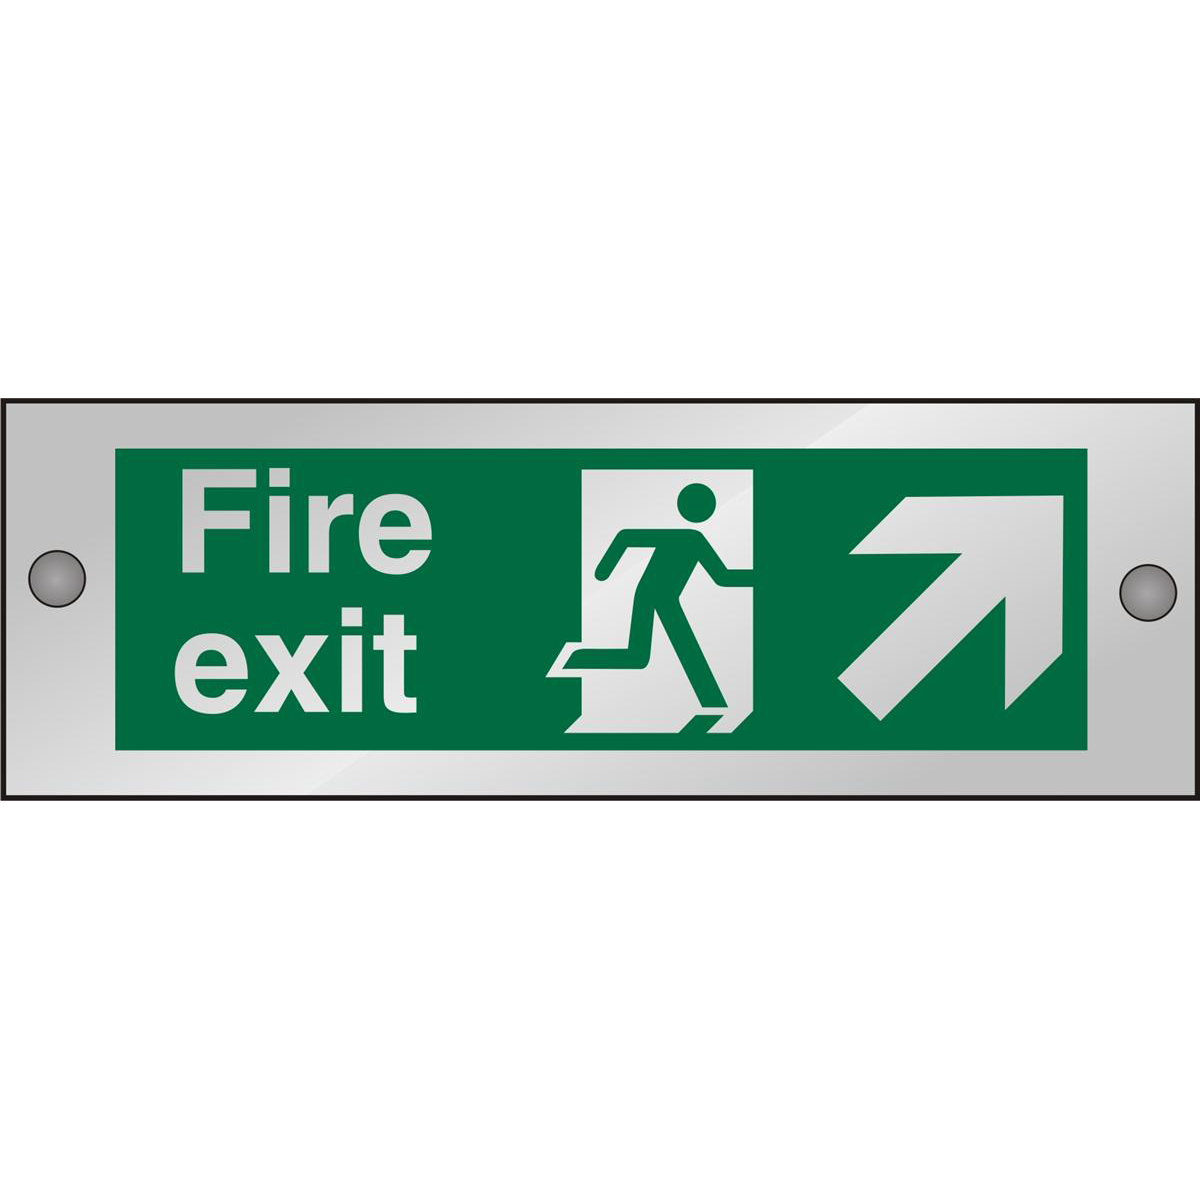 Clear Sign 300x100 5mm FireExit Man Running Right&Arrow trhc Ref CACSP316300x100 Up to 10 Day Leadtime